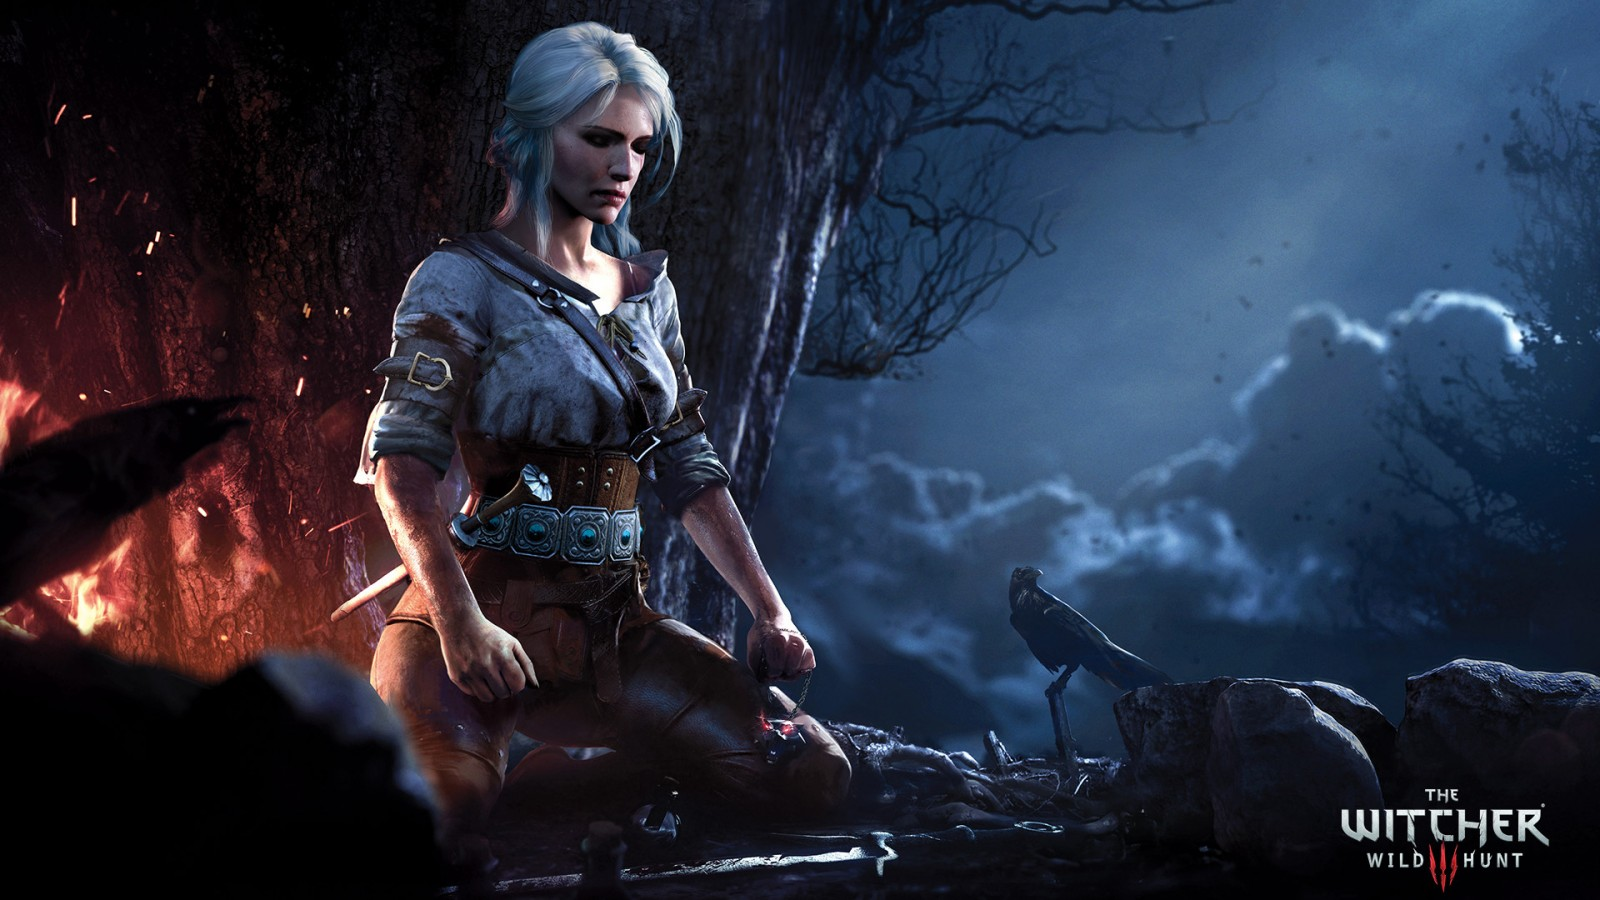 Good 3d Wallpapers For Desktop The Witcher 3 Wild Hunt Ciri Wallpapers Hd Wallpapers